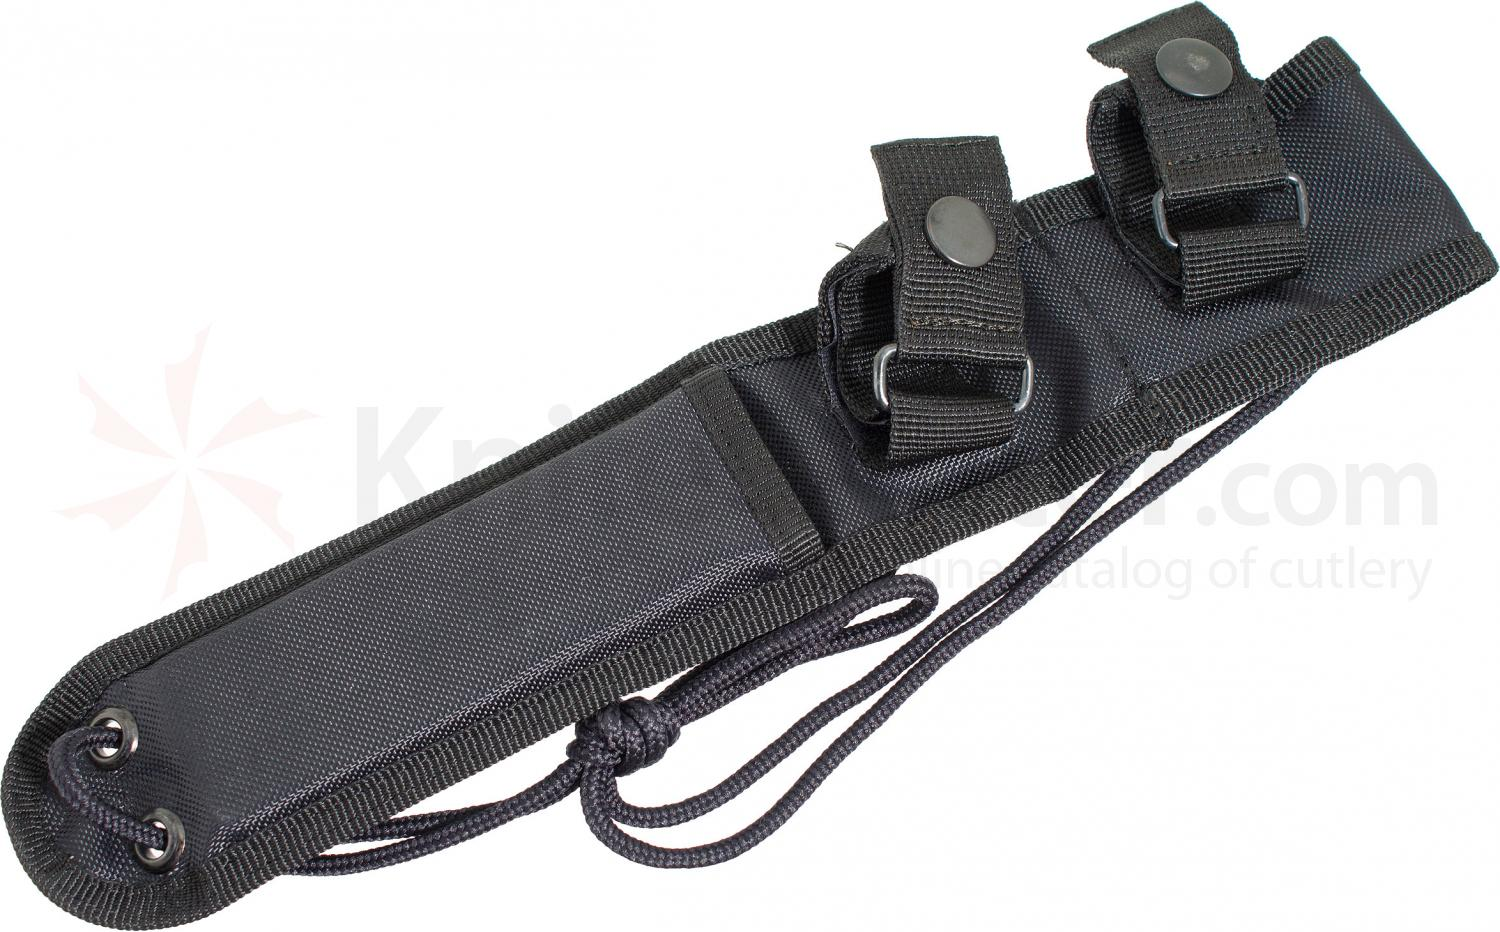 Ontario Sheath Fits TAK-1 Survival Knife